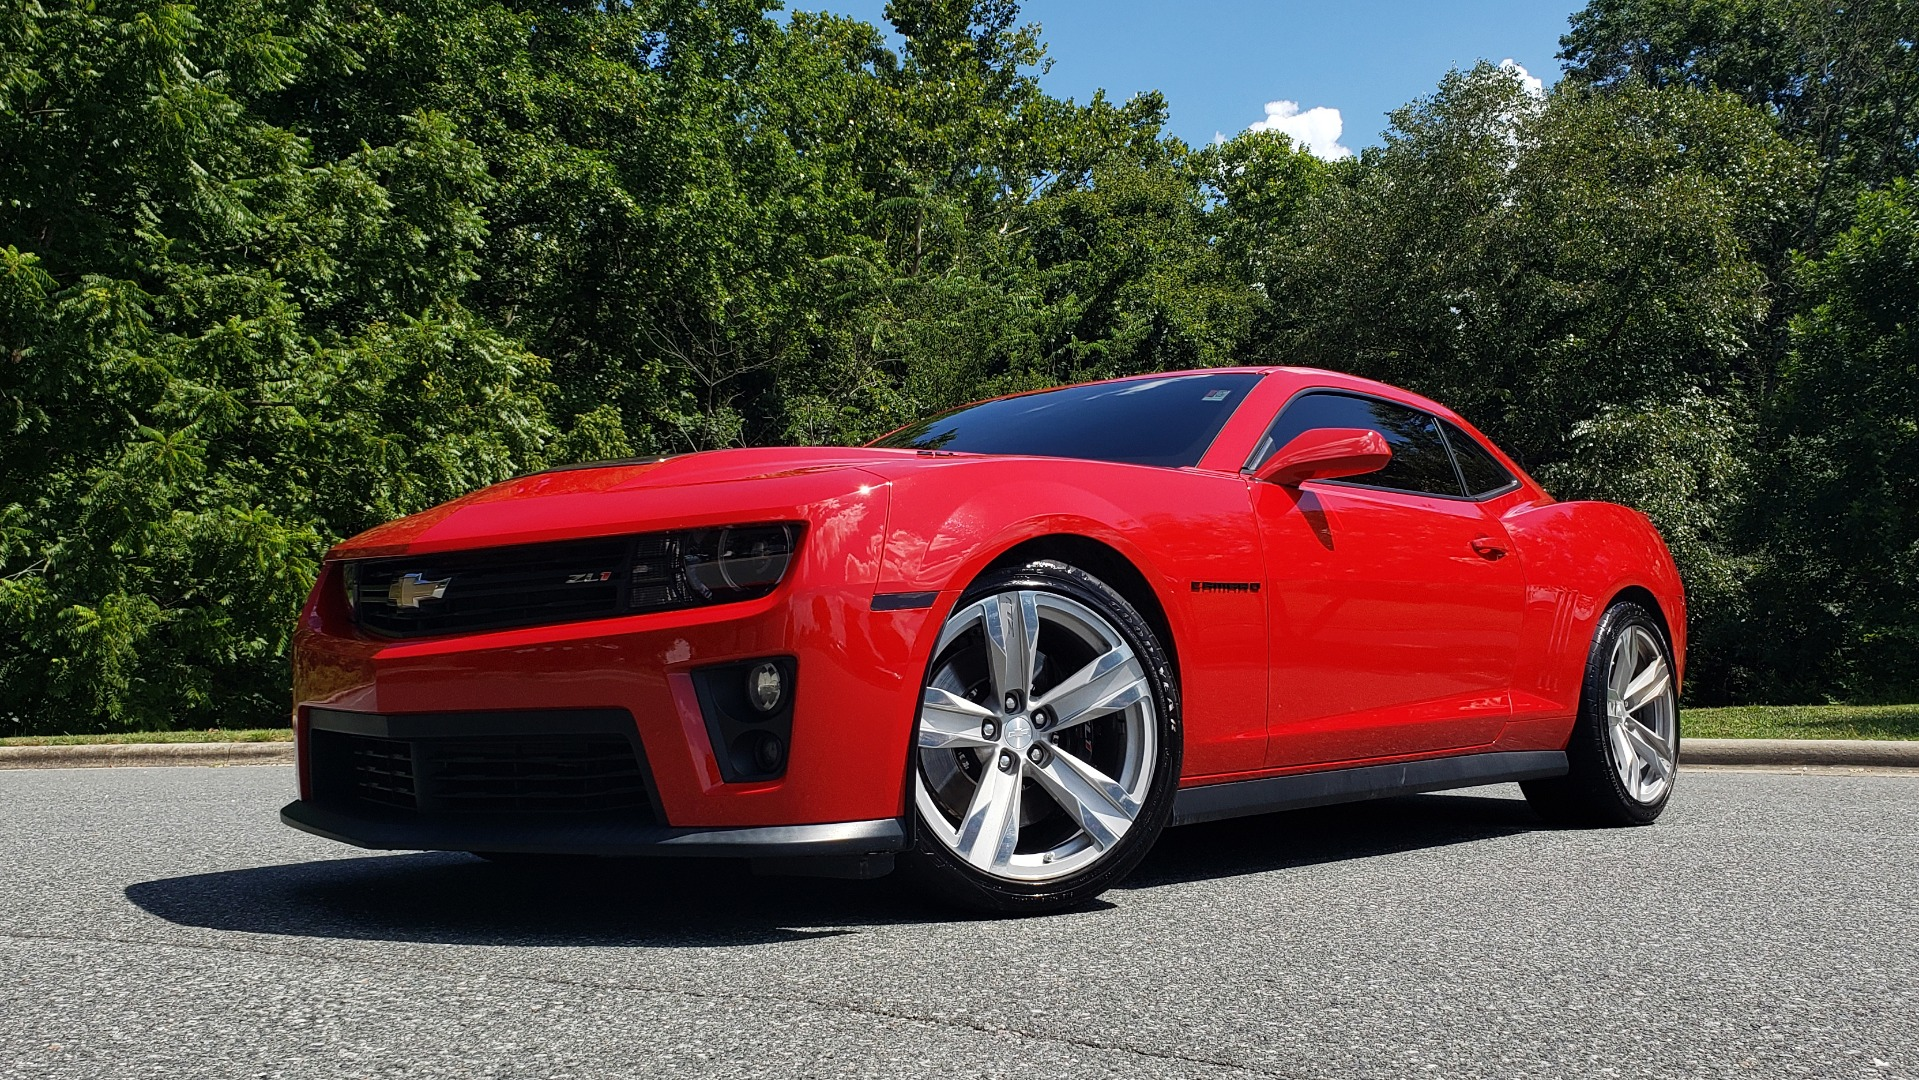 Used 2013 Chevrolet CAMARO ZL1 / 6.2L SUPERCHARGED 580HP / 6-SPD AUTO / NAV / REARVIEW for sale Sold at Formula Imports in Charlotte NC 28227 2